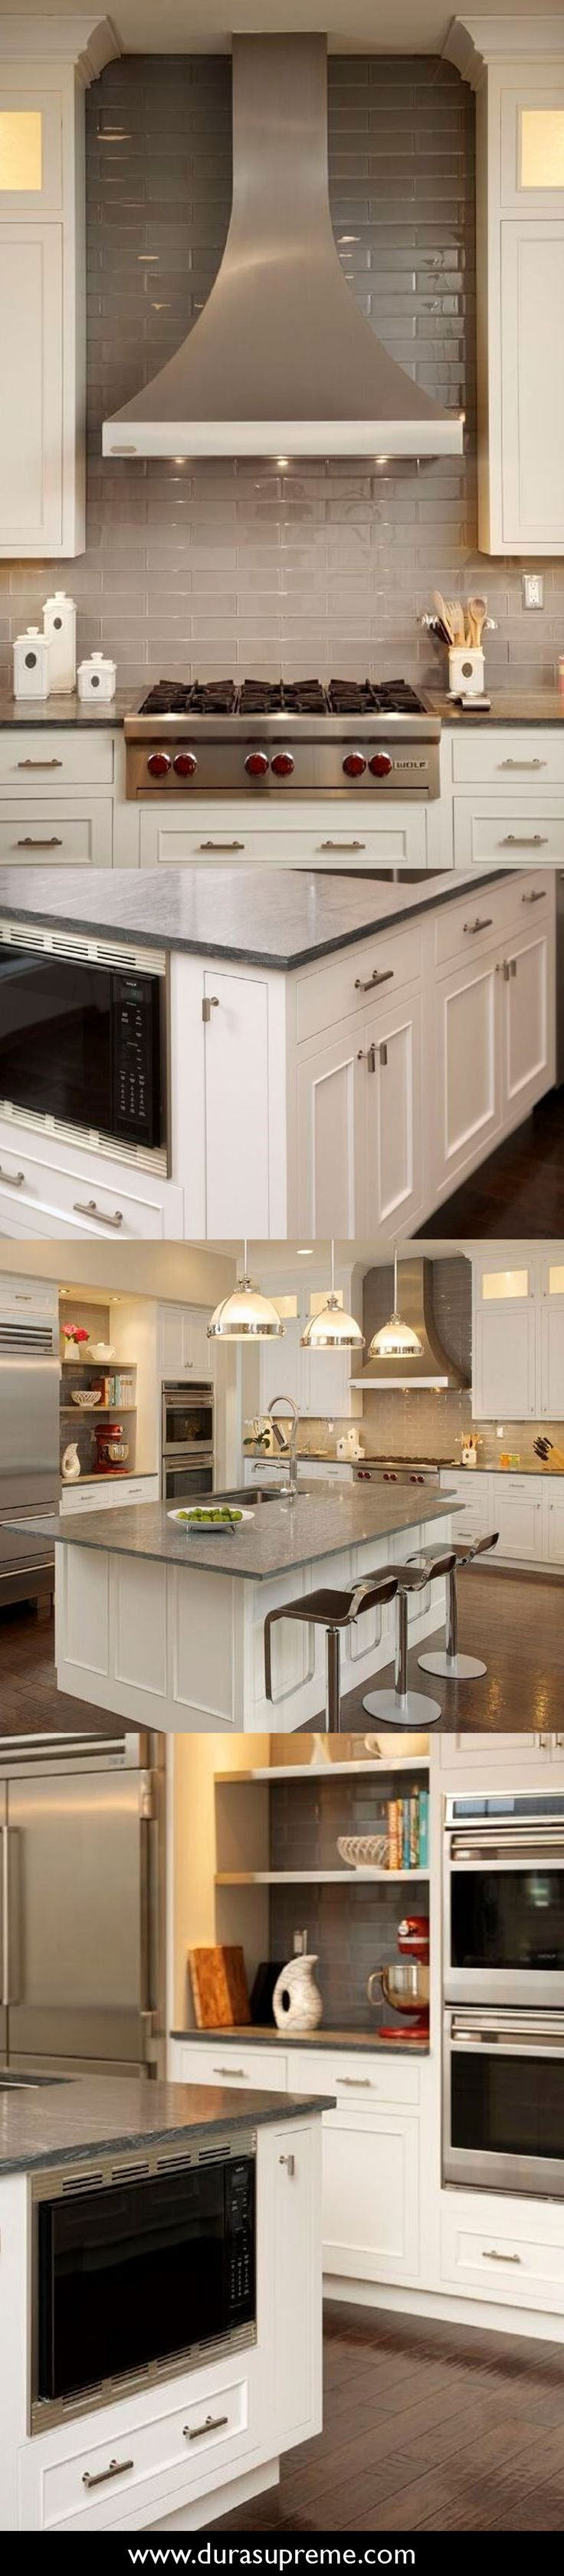 Uncategorized Transitional Kitchen Design Ideas best 25 transitional kitchen ideas on pinterest family style a remodel story about beautiful clean for a